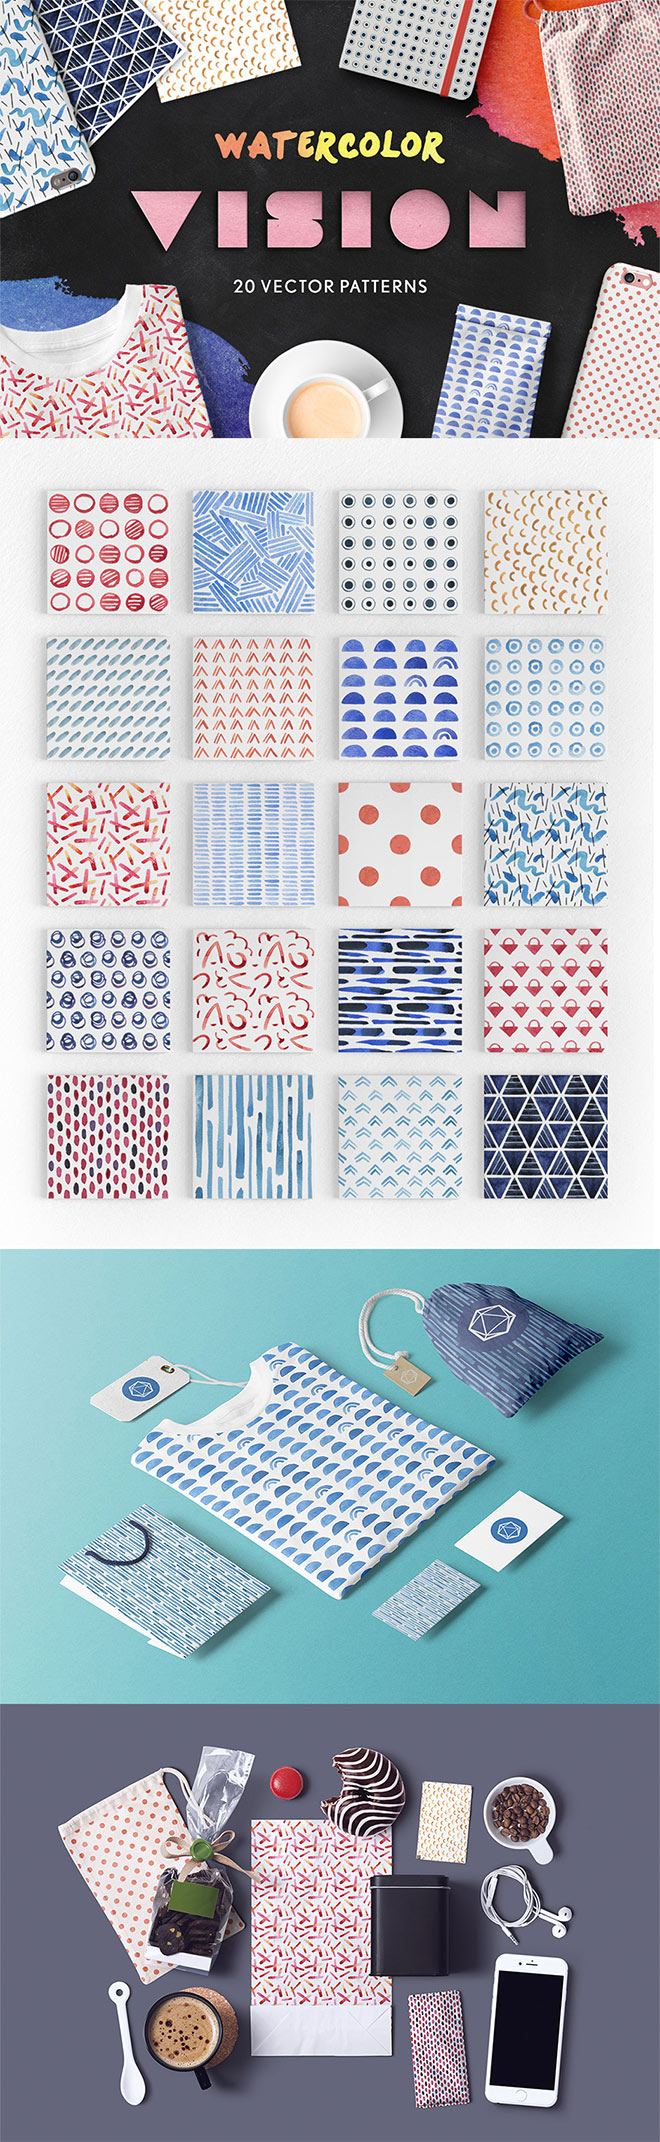 Watercolor Vision Vector Patterns